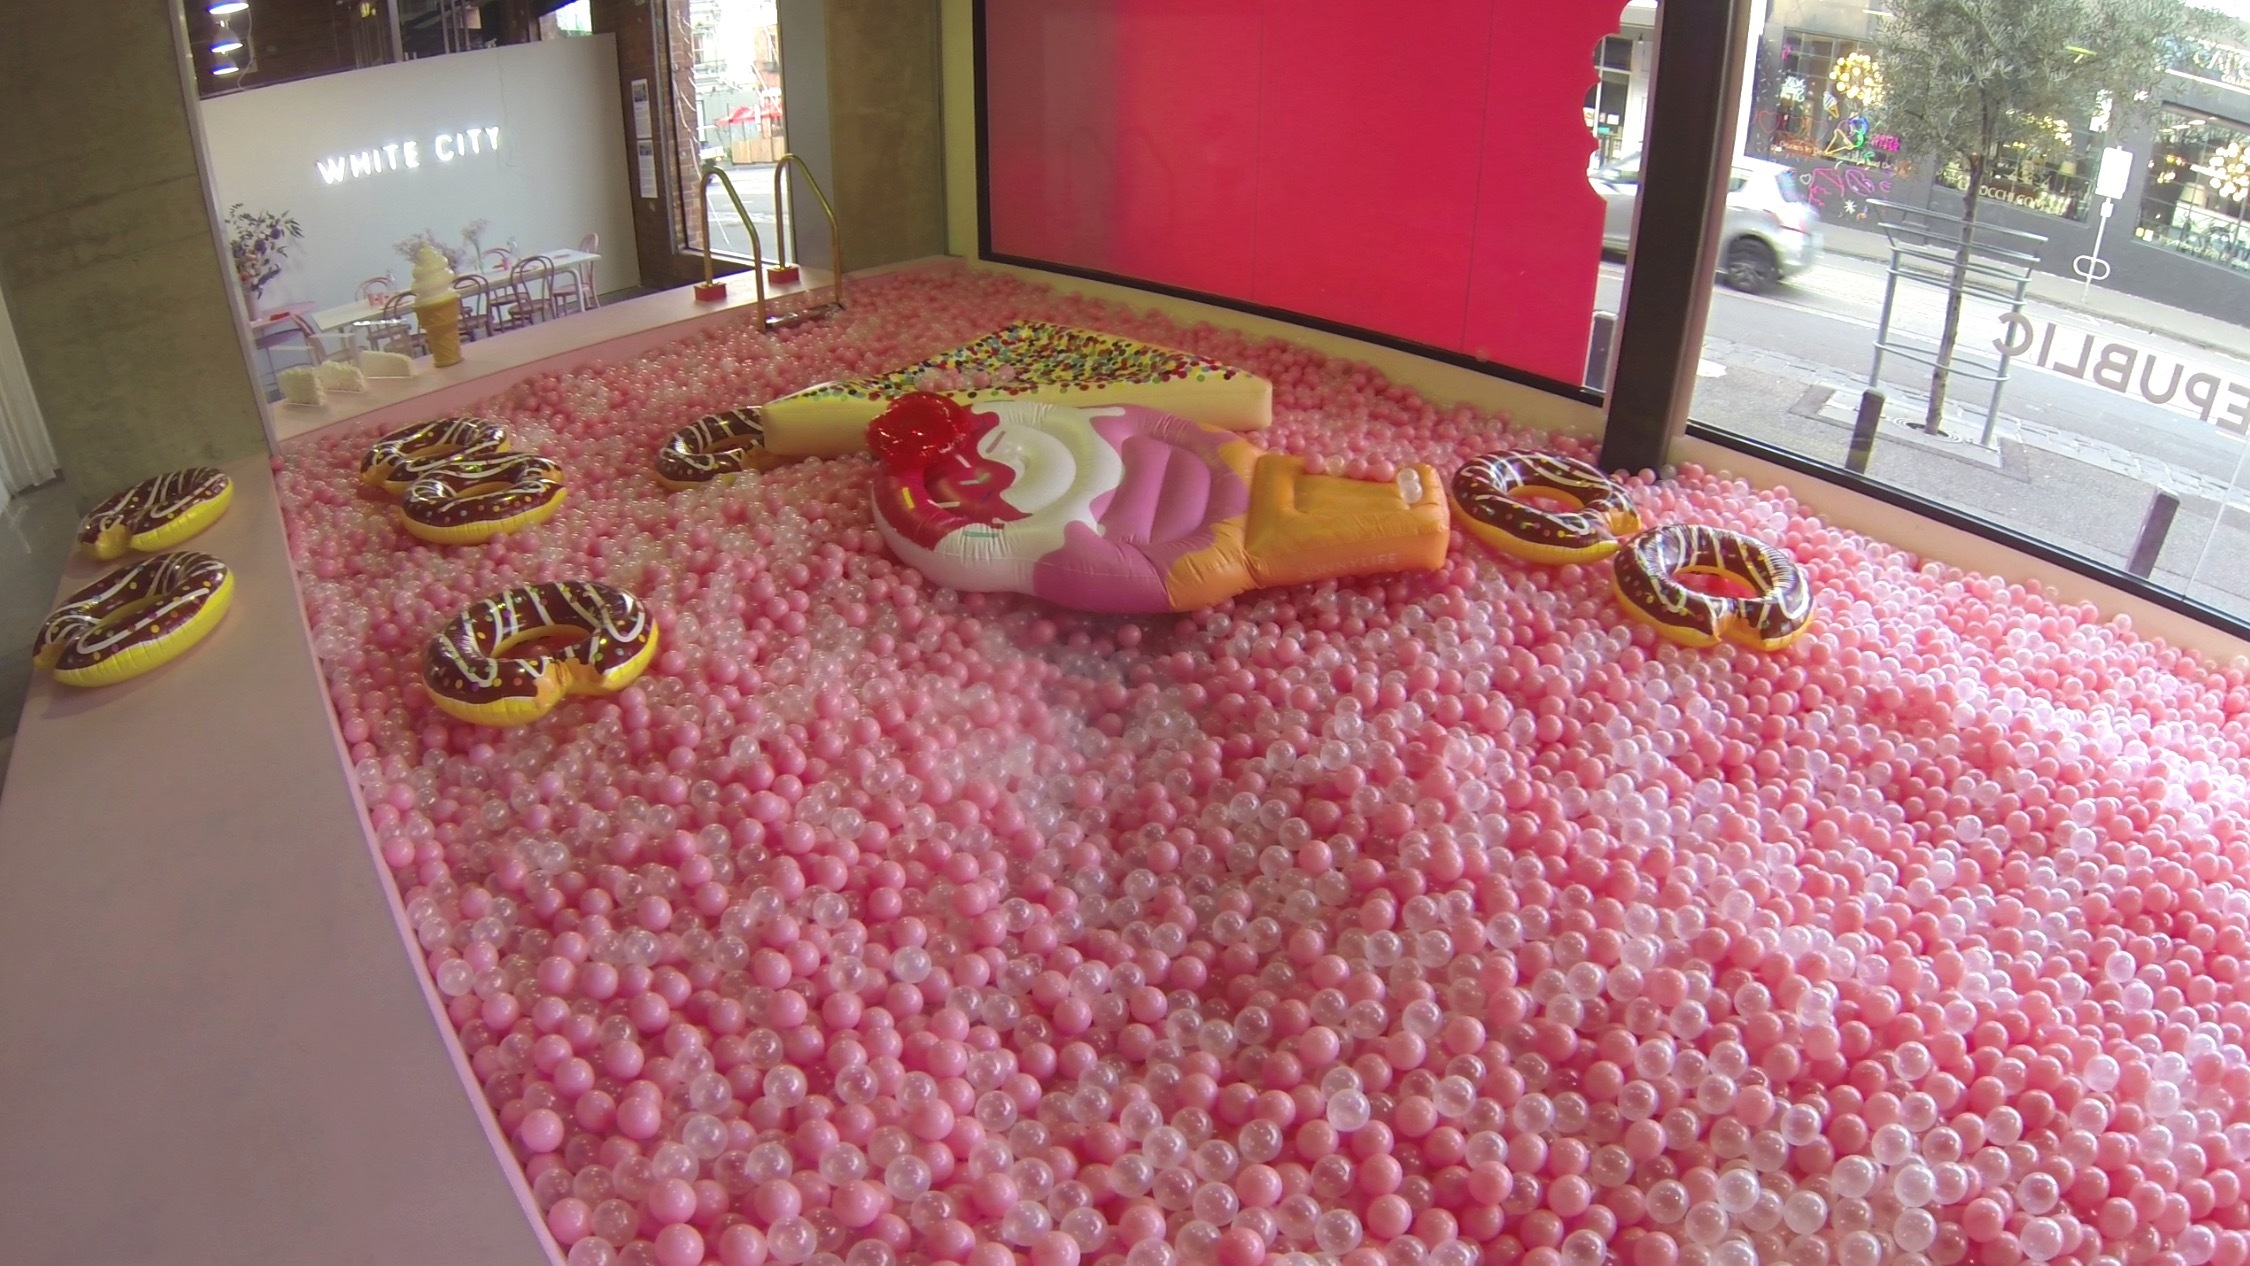 Pool of pink balls at Sugar Republic